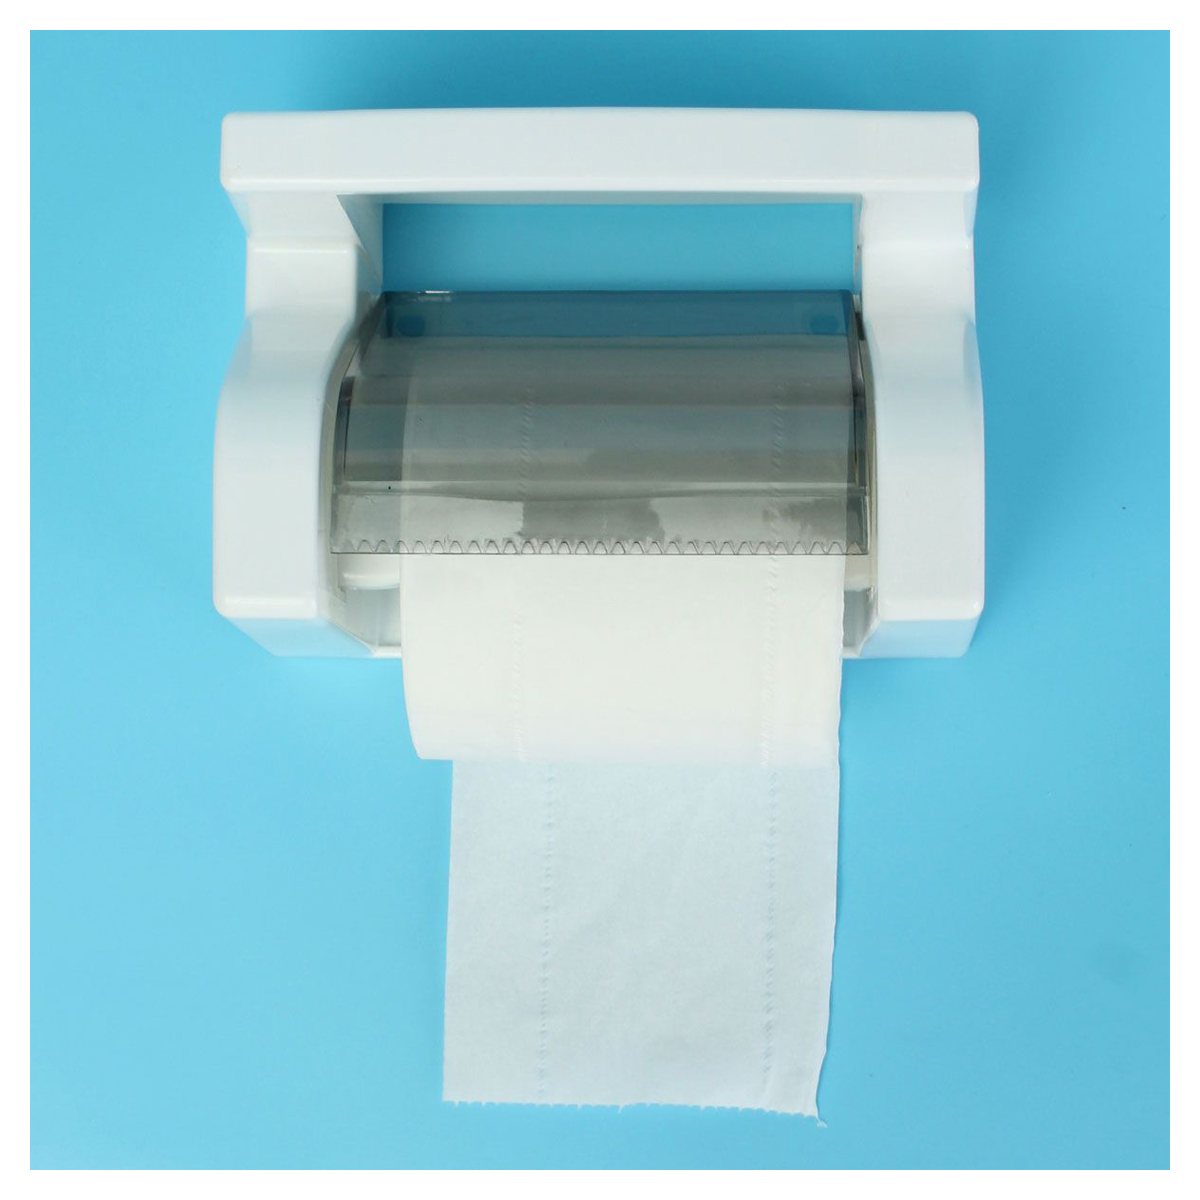 Waterproof toilet paper holder tissue roll stand box with shelf rack bathroom sh ebay - Toilet paper roll stand ...